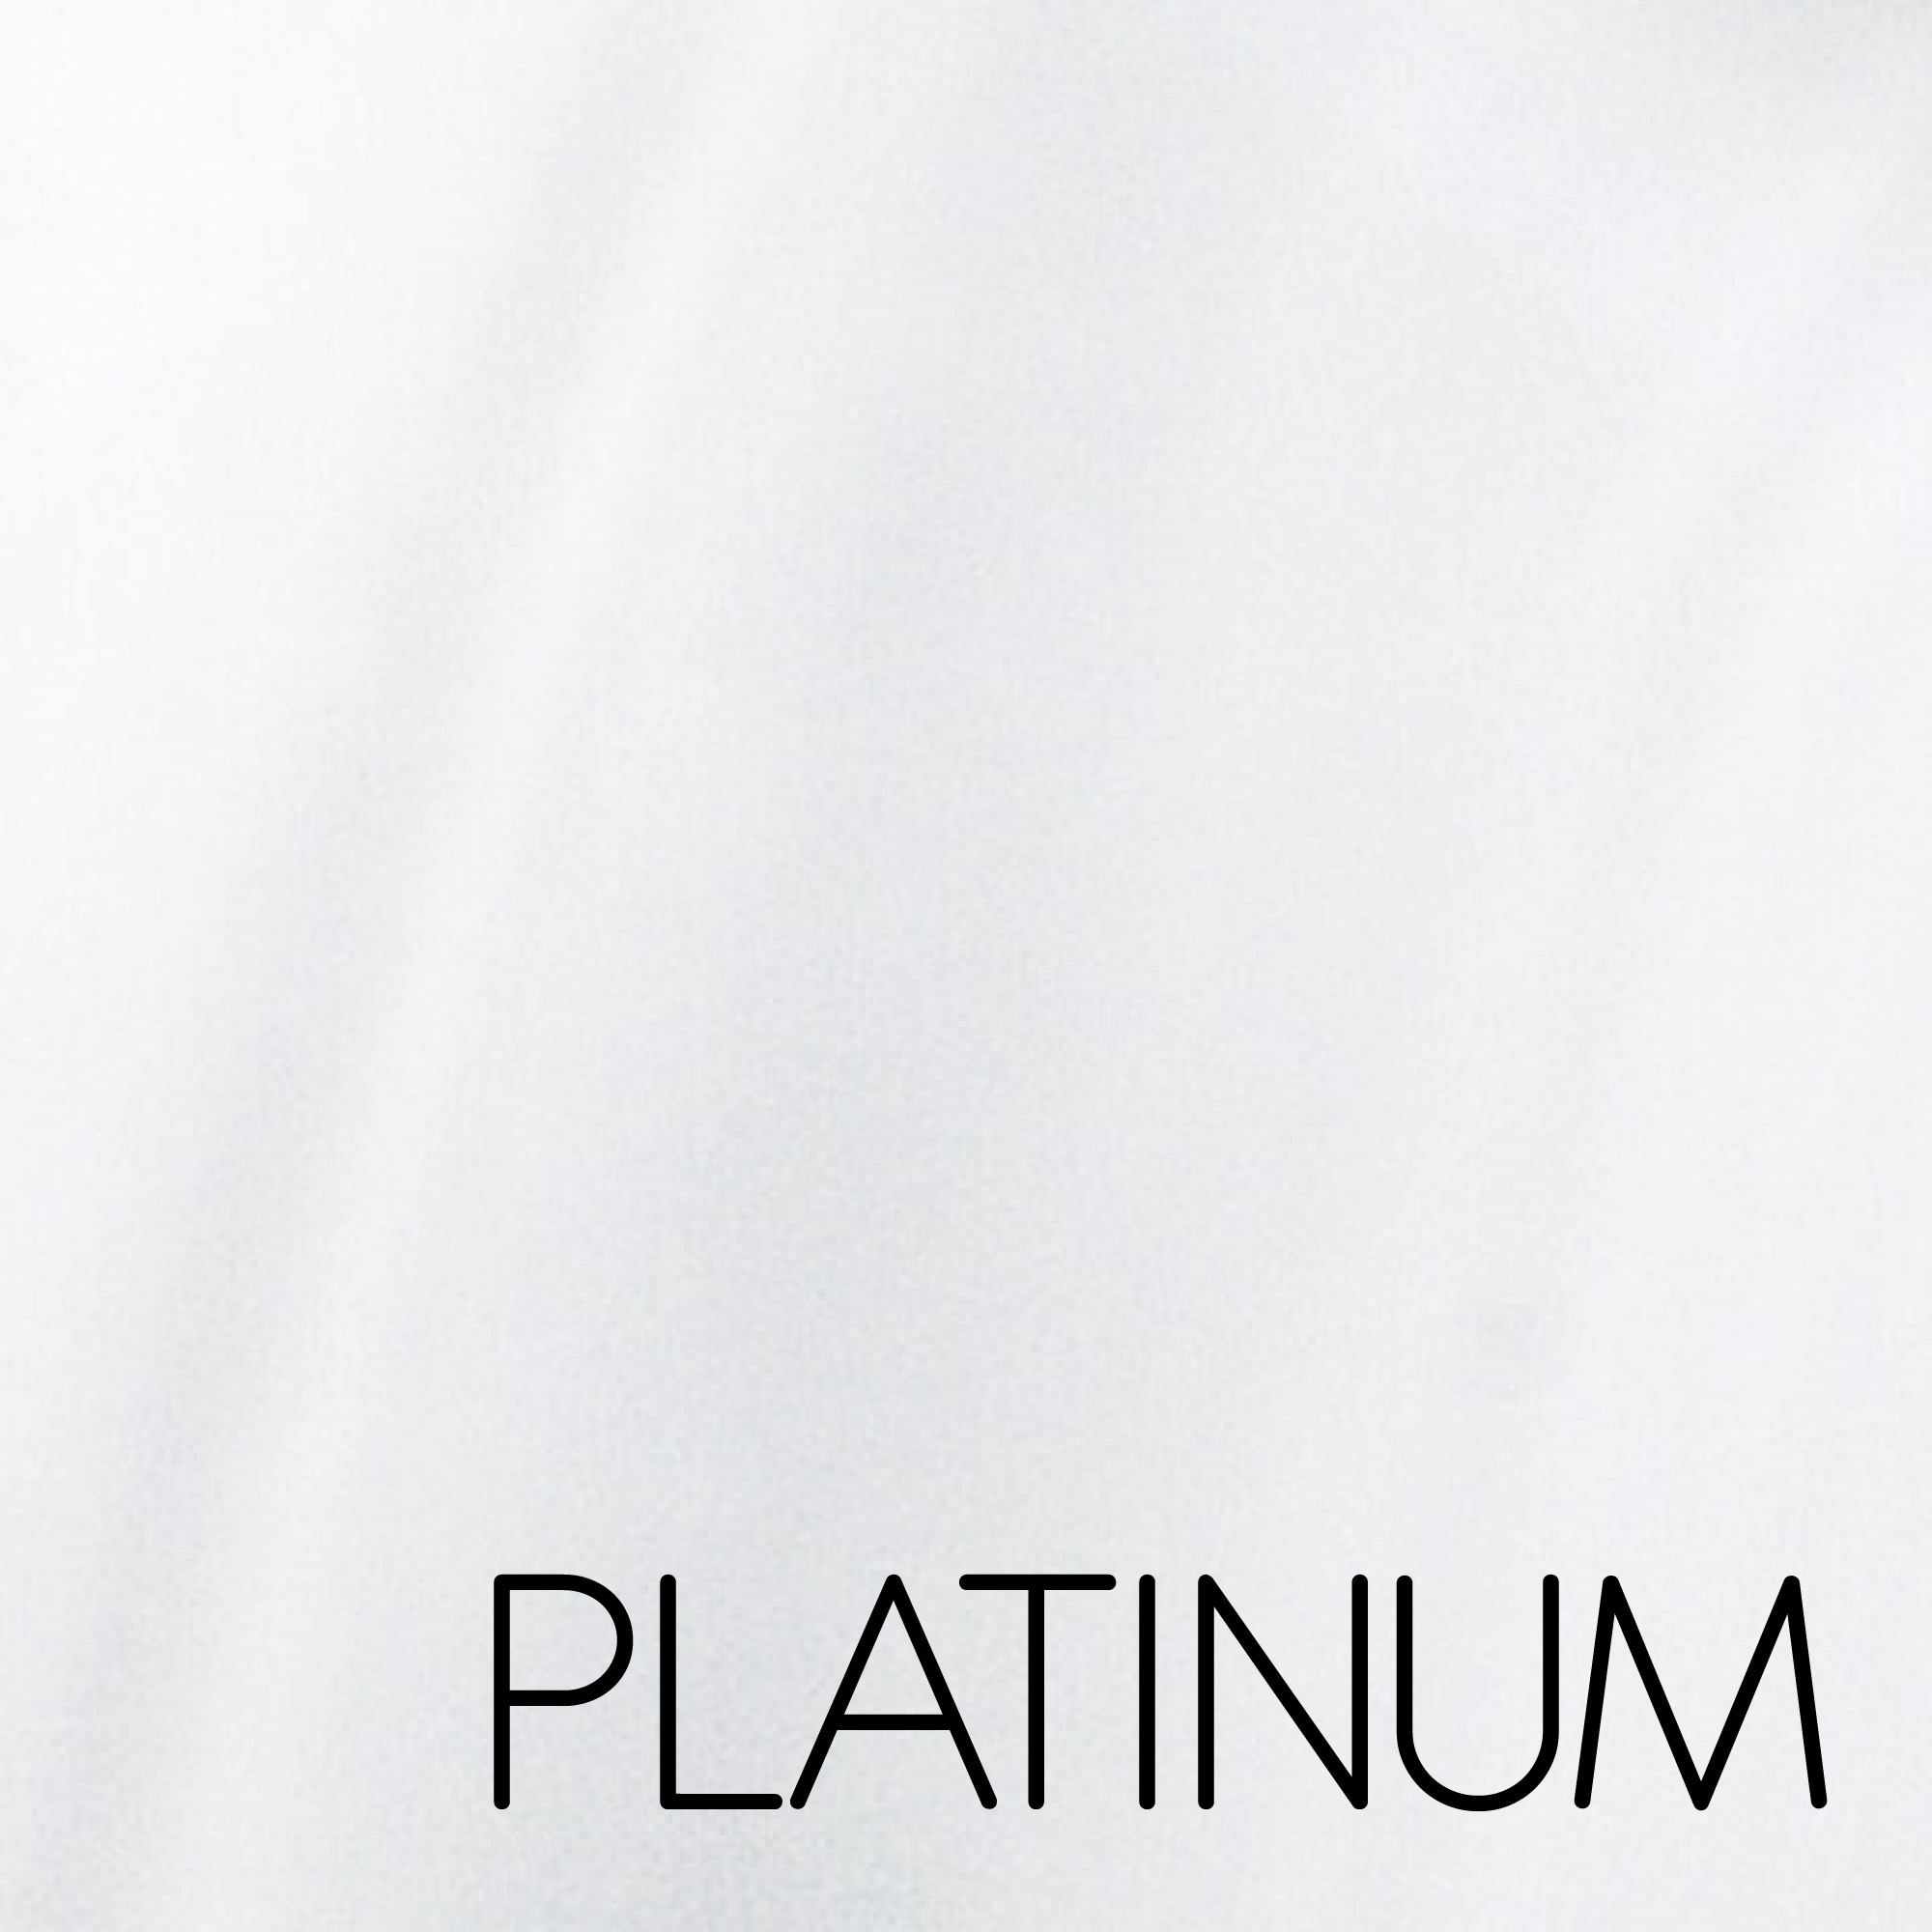 PLATINUM SHELL-01.jpg